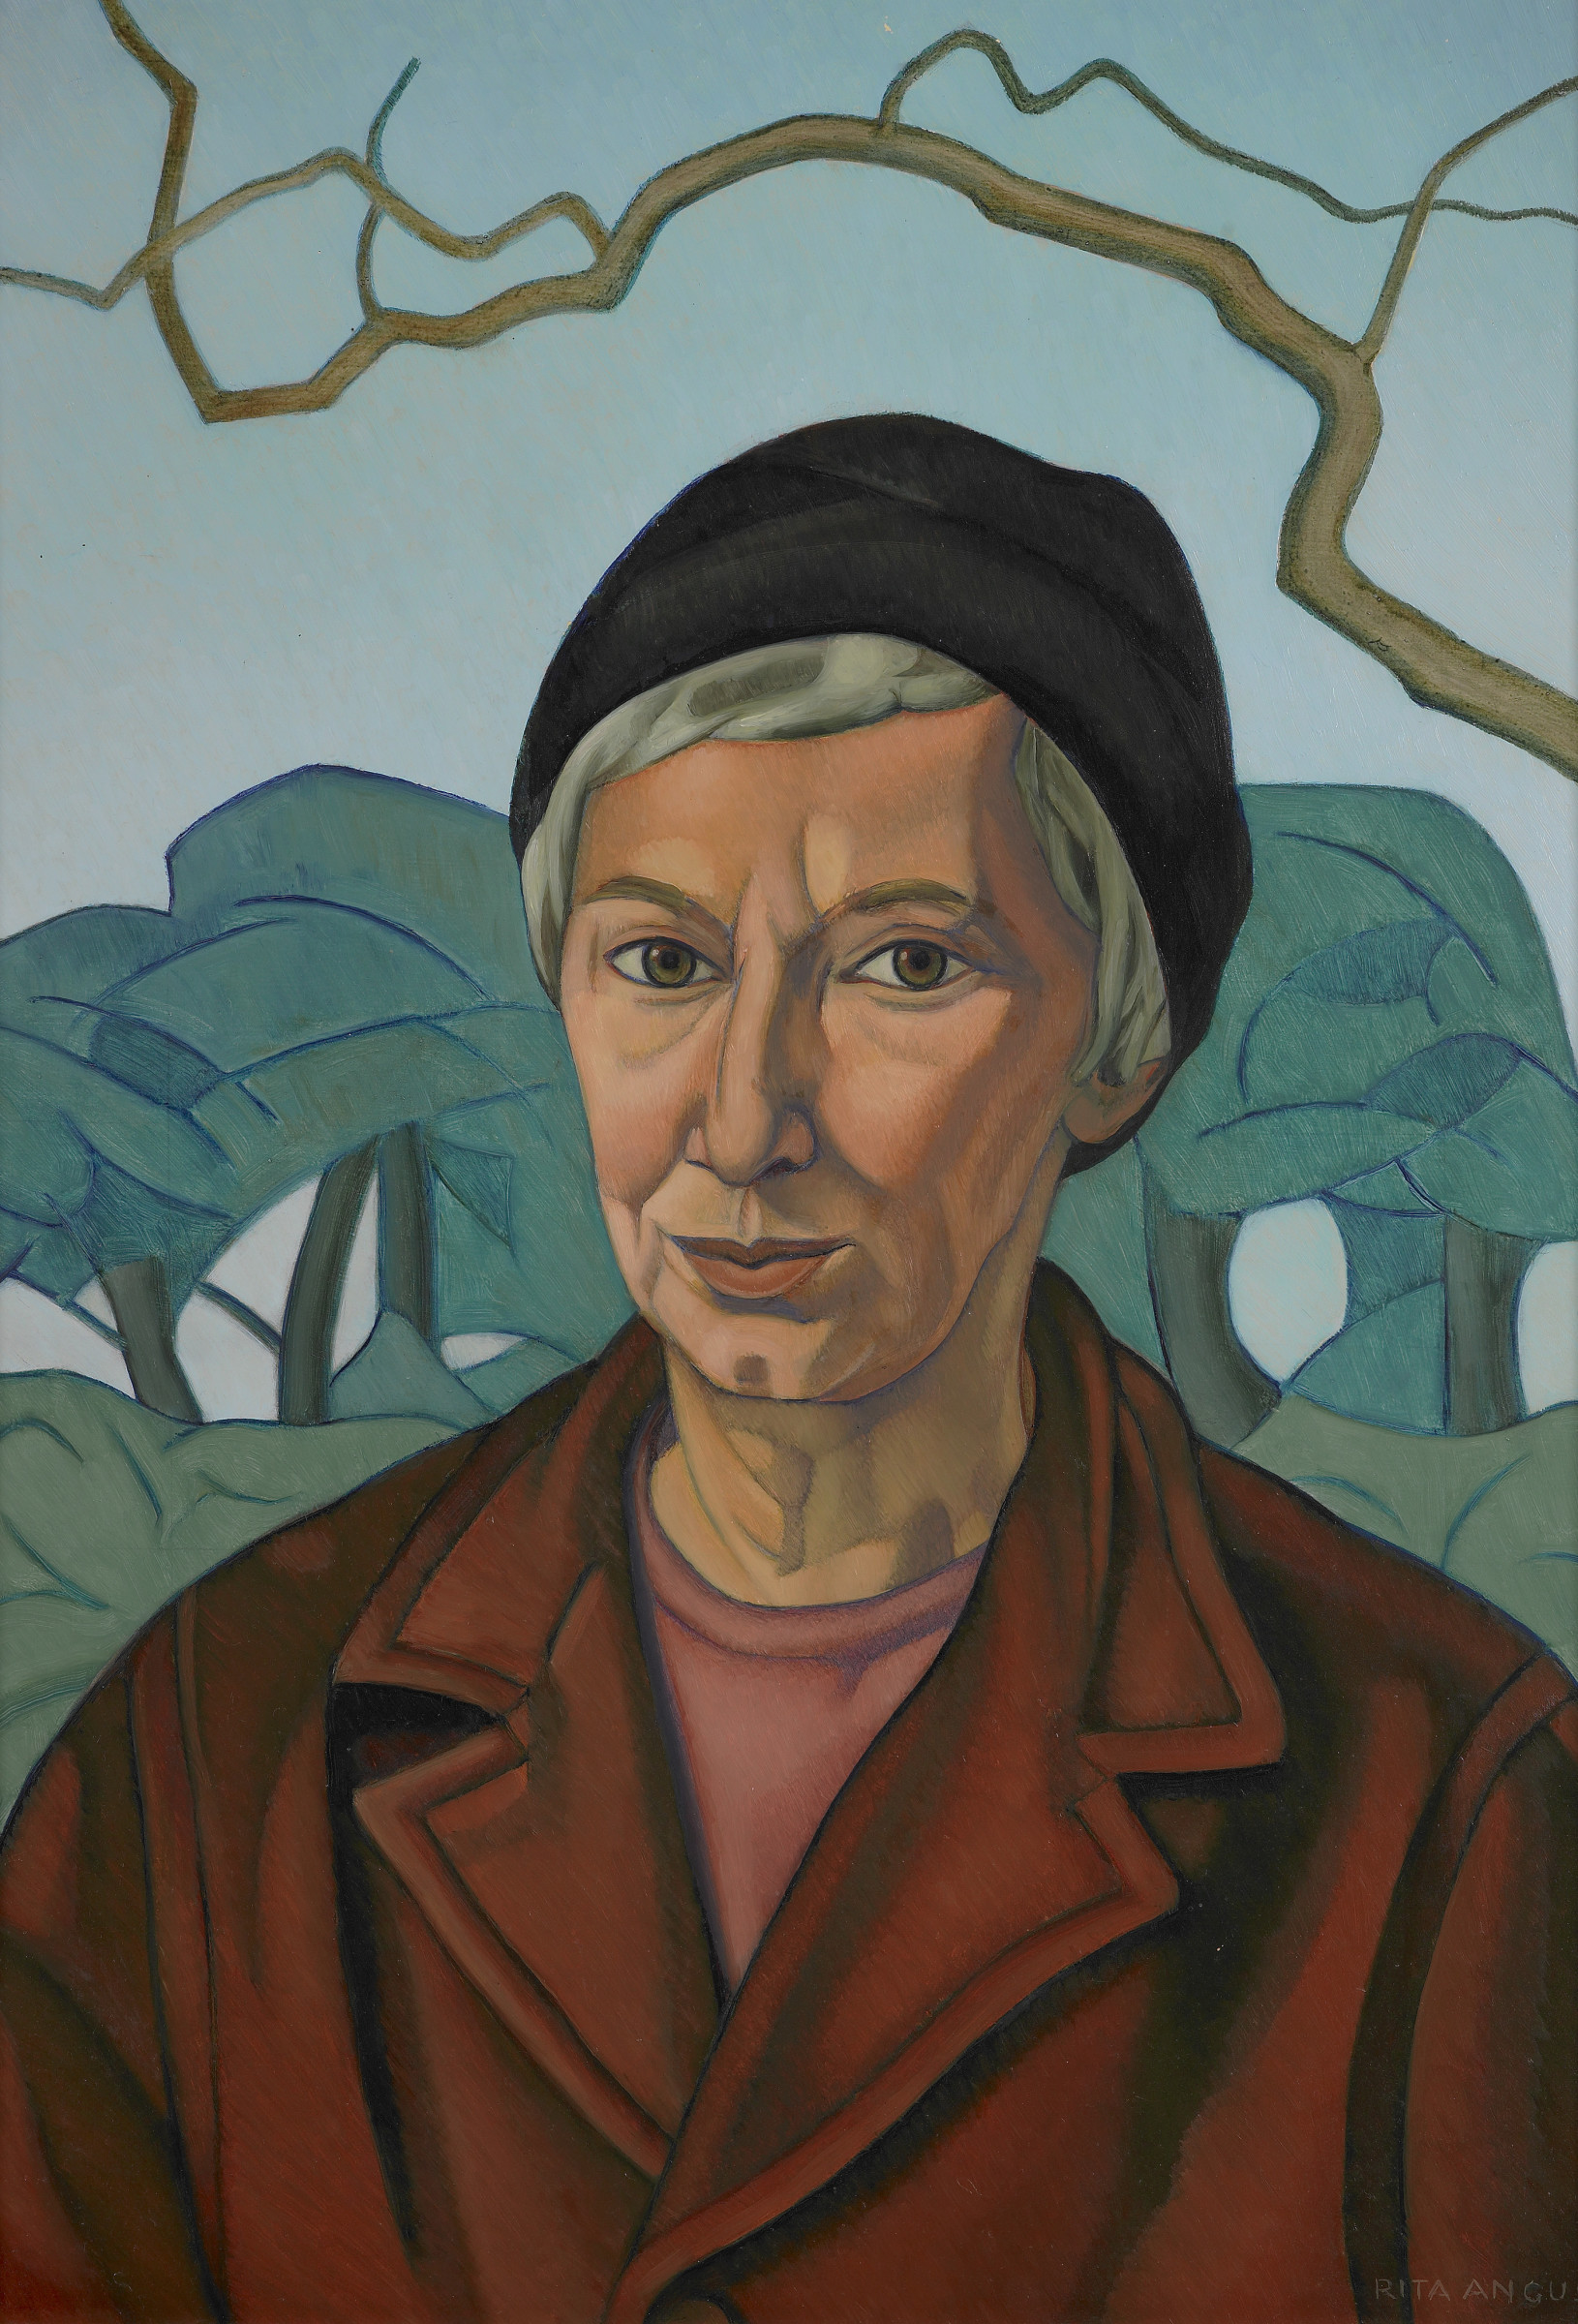 <span class=&#34;link fancybox-details-link&#34;><a href=&#34;/artists/70-rita-angus/works/7232-rita-angus-self-portrait-1968/&#34;>View Detail Page</a></span><div class=&#34;artist&#34;><strong>Rita Angus</strong></div> <div class=&#34;title&#34;><em>Self Portrait</em>, 1968</div> <div class=&#34;medium&#34;>Oil on board</div> <div class=&#34;dimensions&#34;>22.7 x 15.9 in<br />57.7 x 40.5 cm</div>